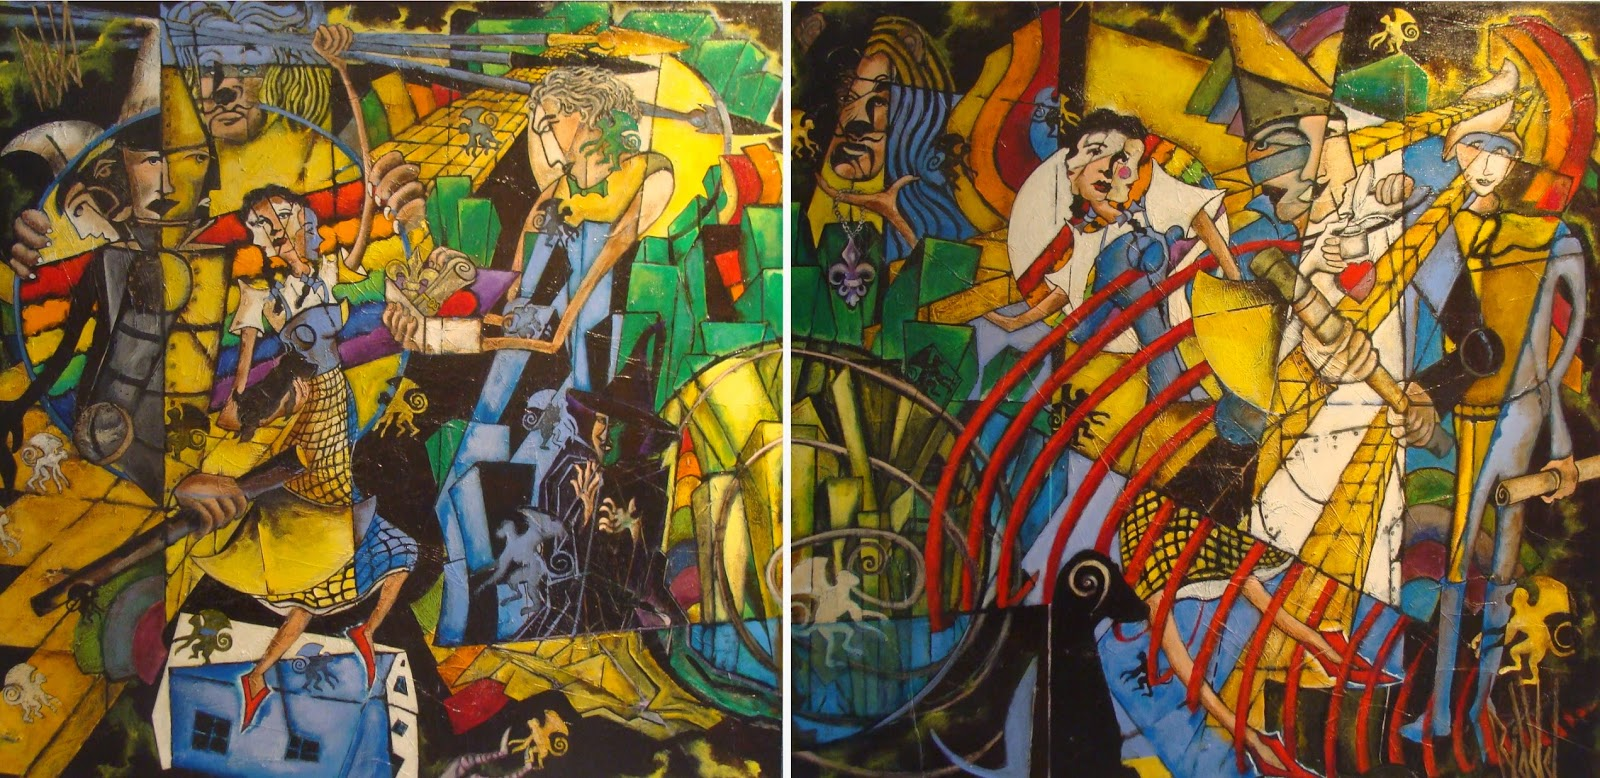 the wizard of oz essay past issues international wizard of oz club  barbara steven paul riddle marion royael gallery these two 4 x 4 acrylic oil paintings on wizard of oz